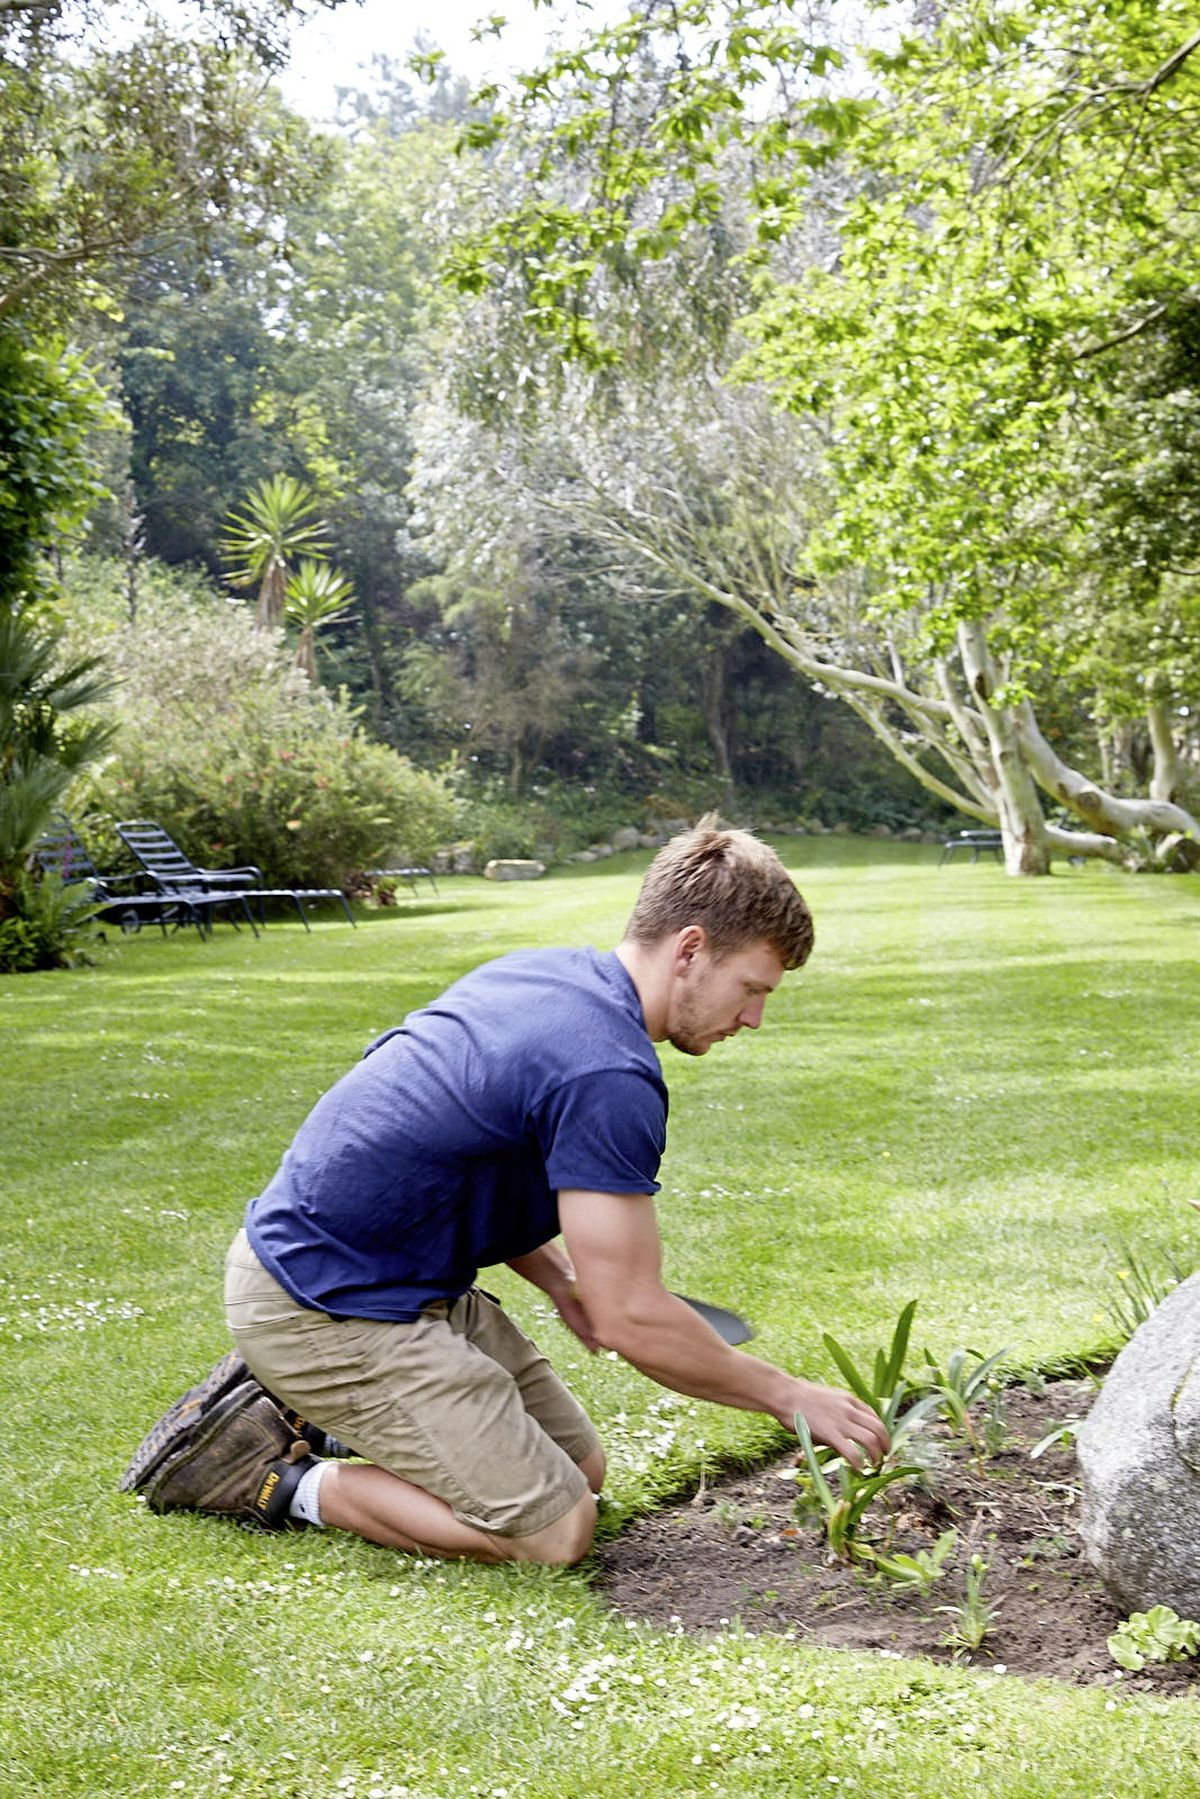 Herm Island's head gardener Liam Gaughan tending to some flower beds. (Image supplied by Herm Island)